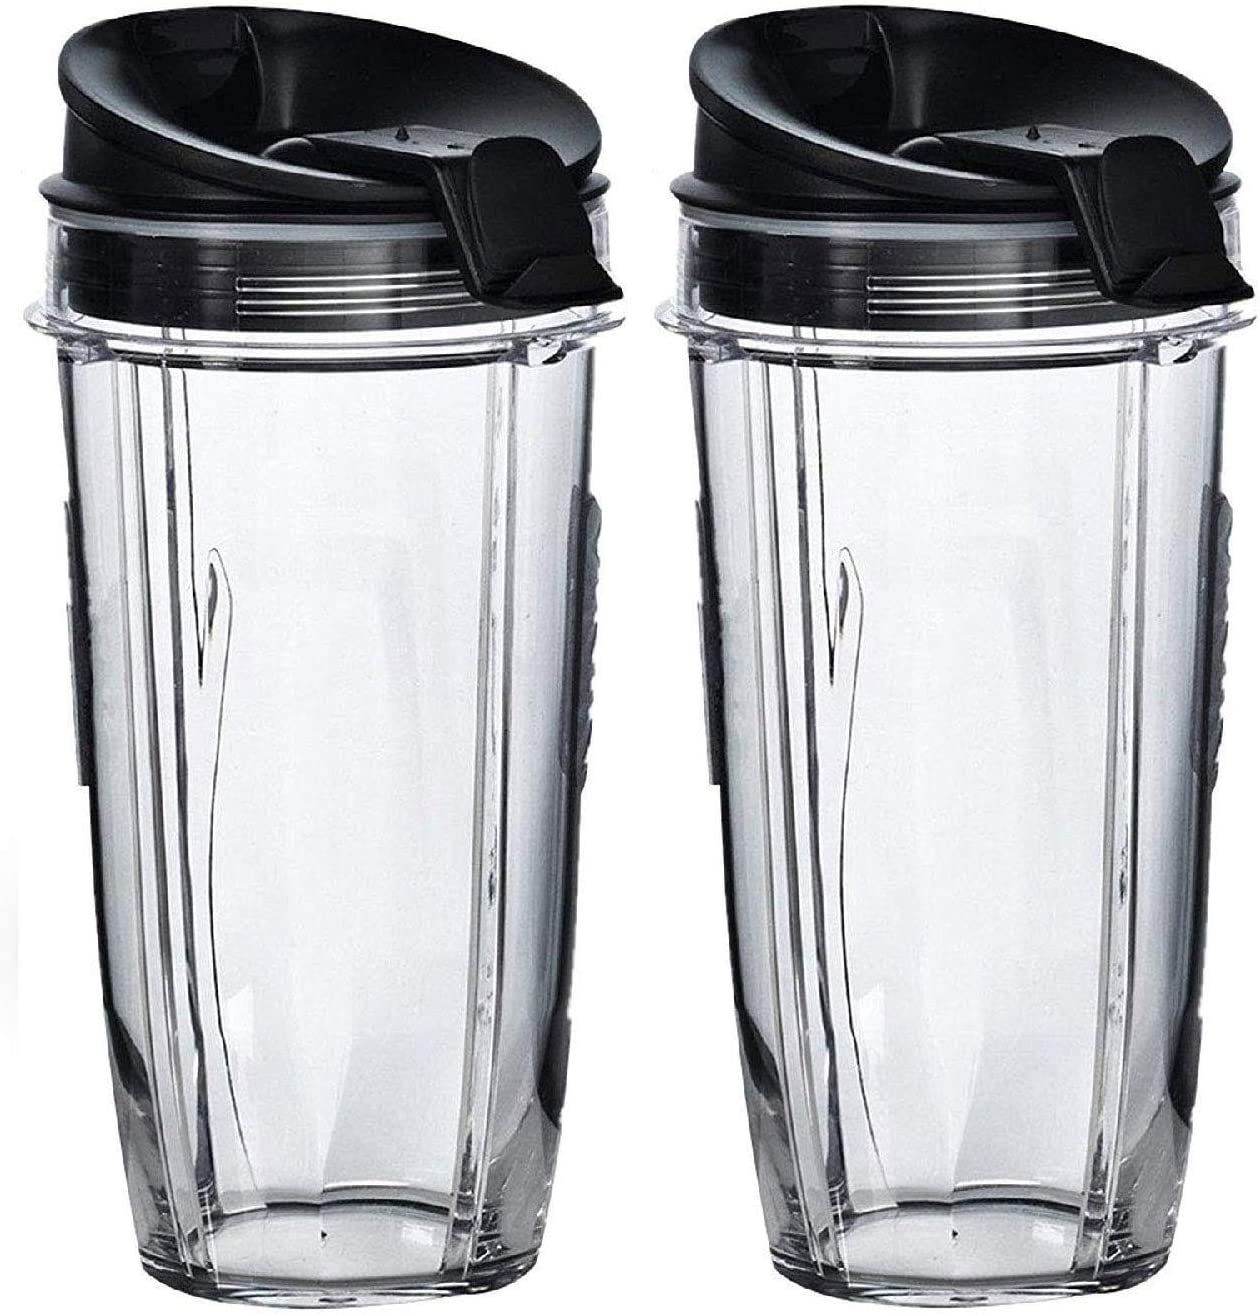 Replacement Nutri Ninja 24 oz Cup with Sip & Seal Lid - For Blender BL450 BL454 Auto-iQ BL480 BL481 BL482 BL687